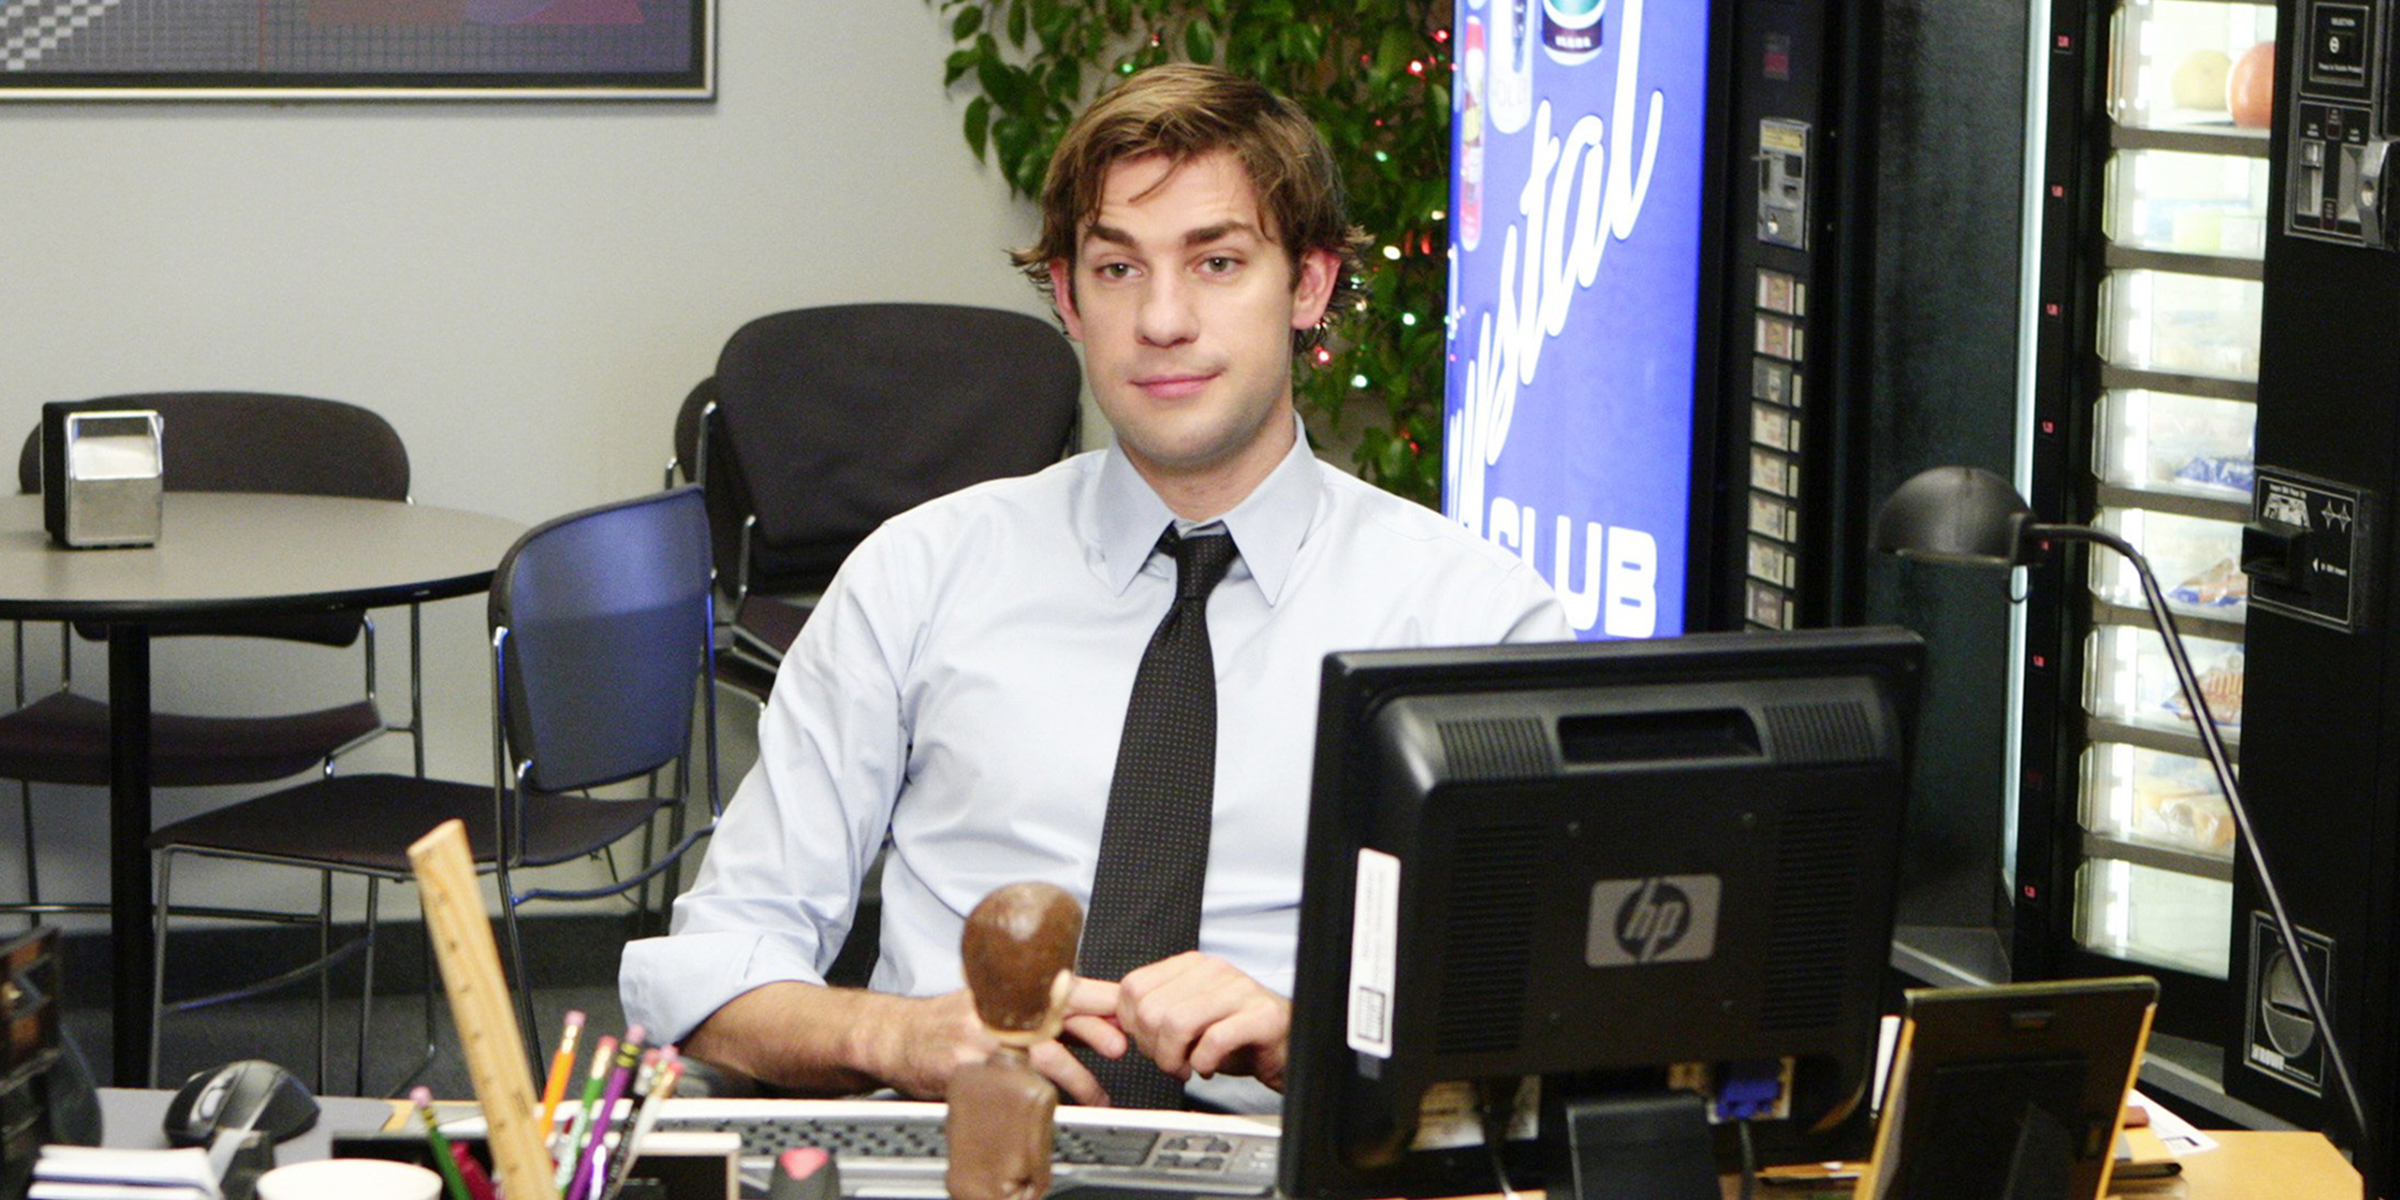 Theofficeconfessions